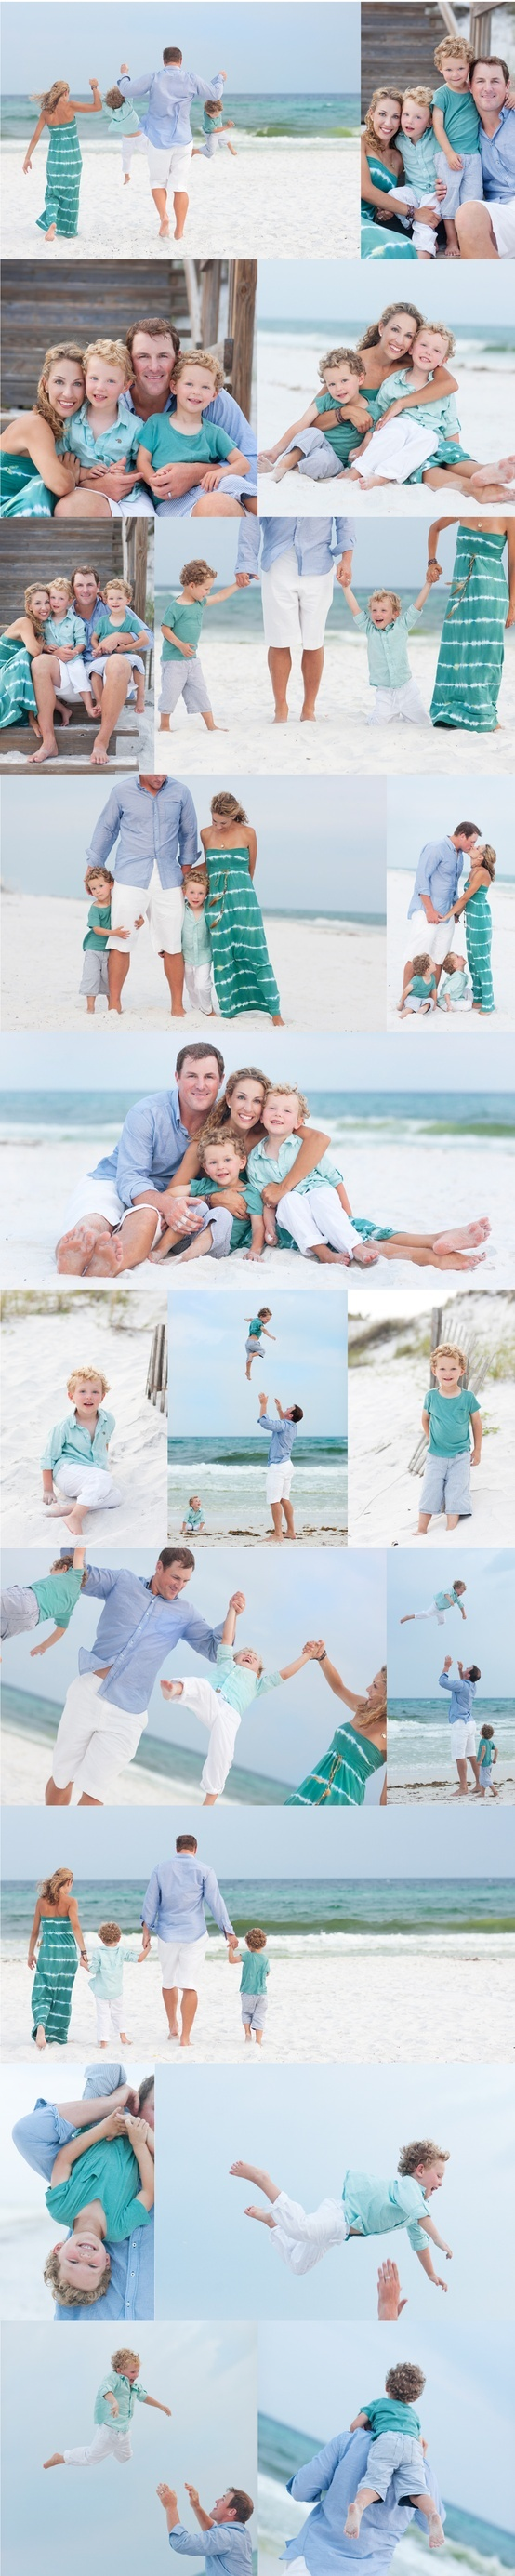 Beautiful Family Beach Poses family portrait  love the outfit colors! Next years beach photos!!